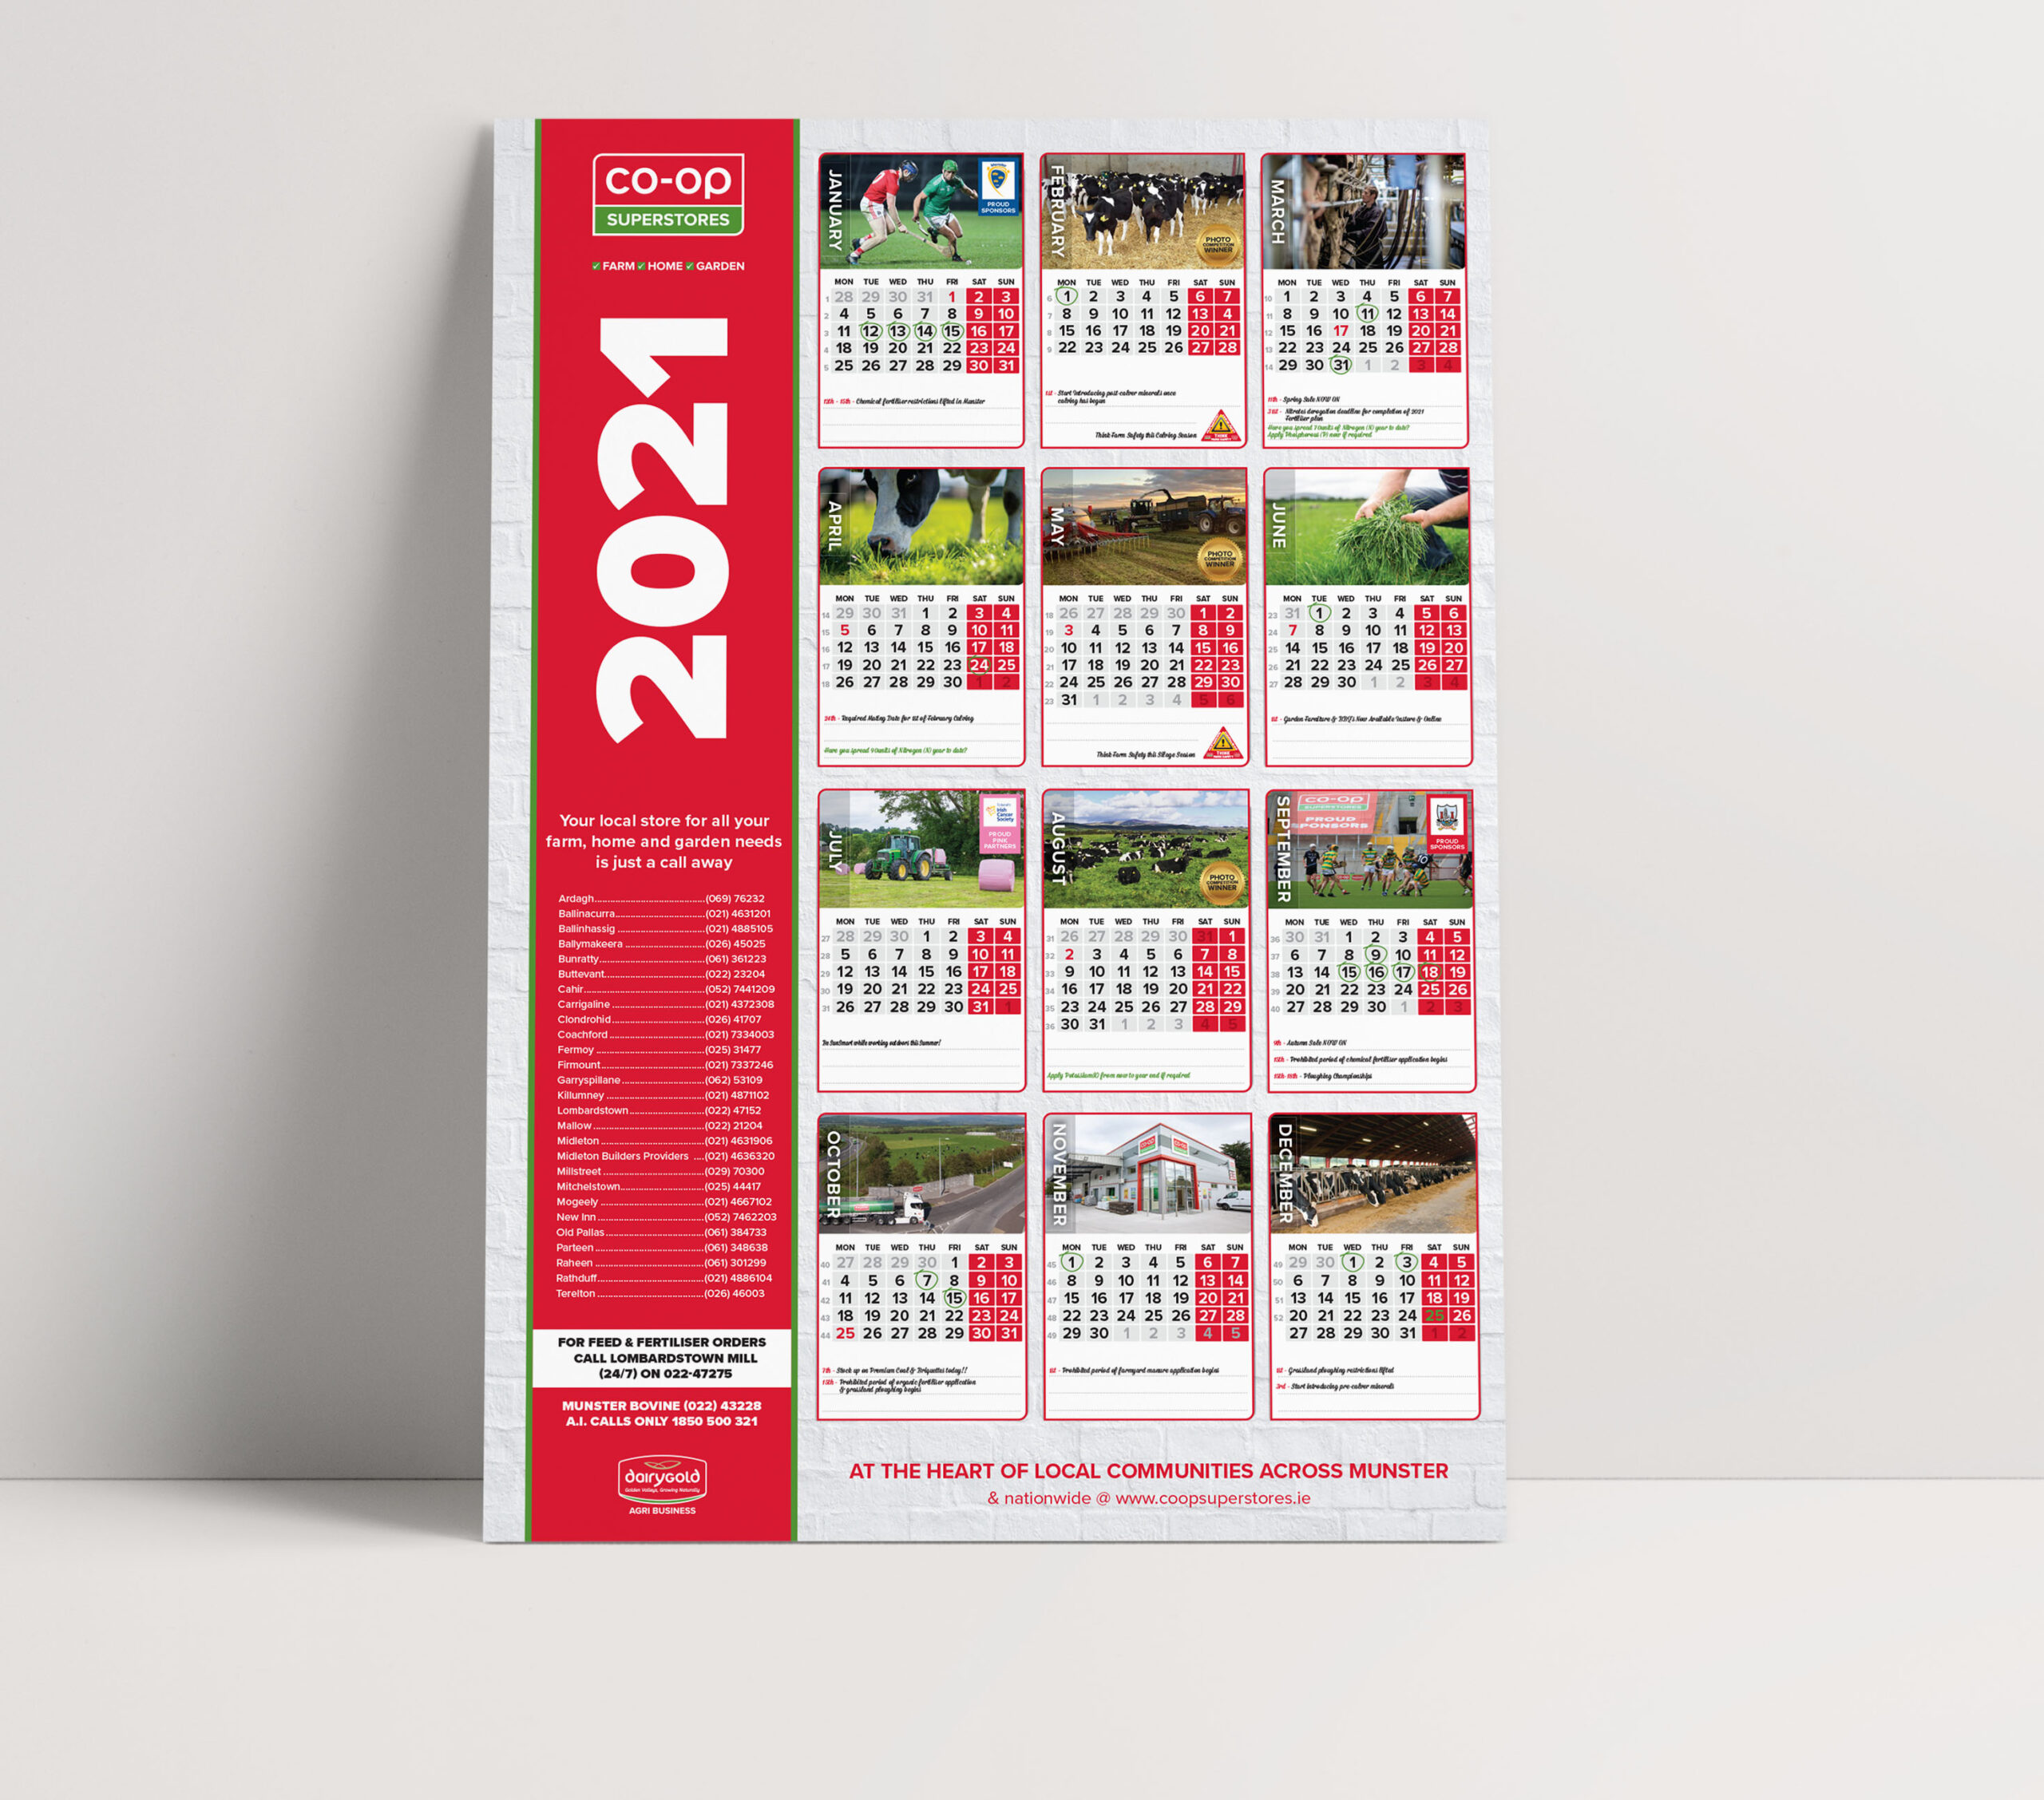 Co-Op Superstores Year to View Calendar